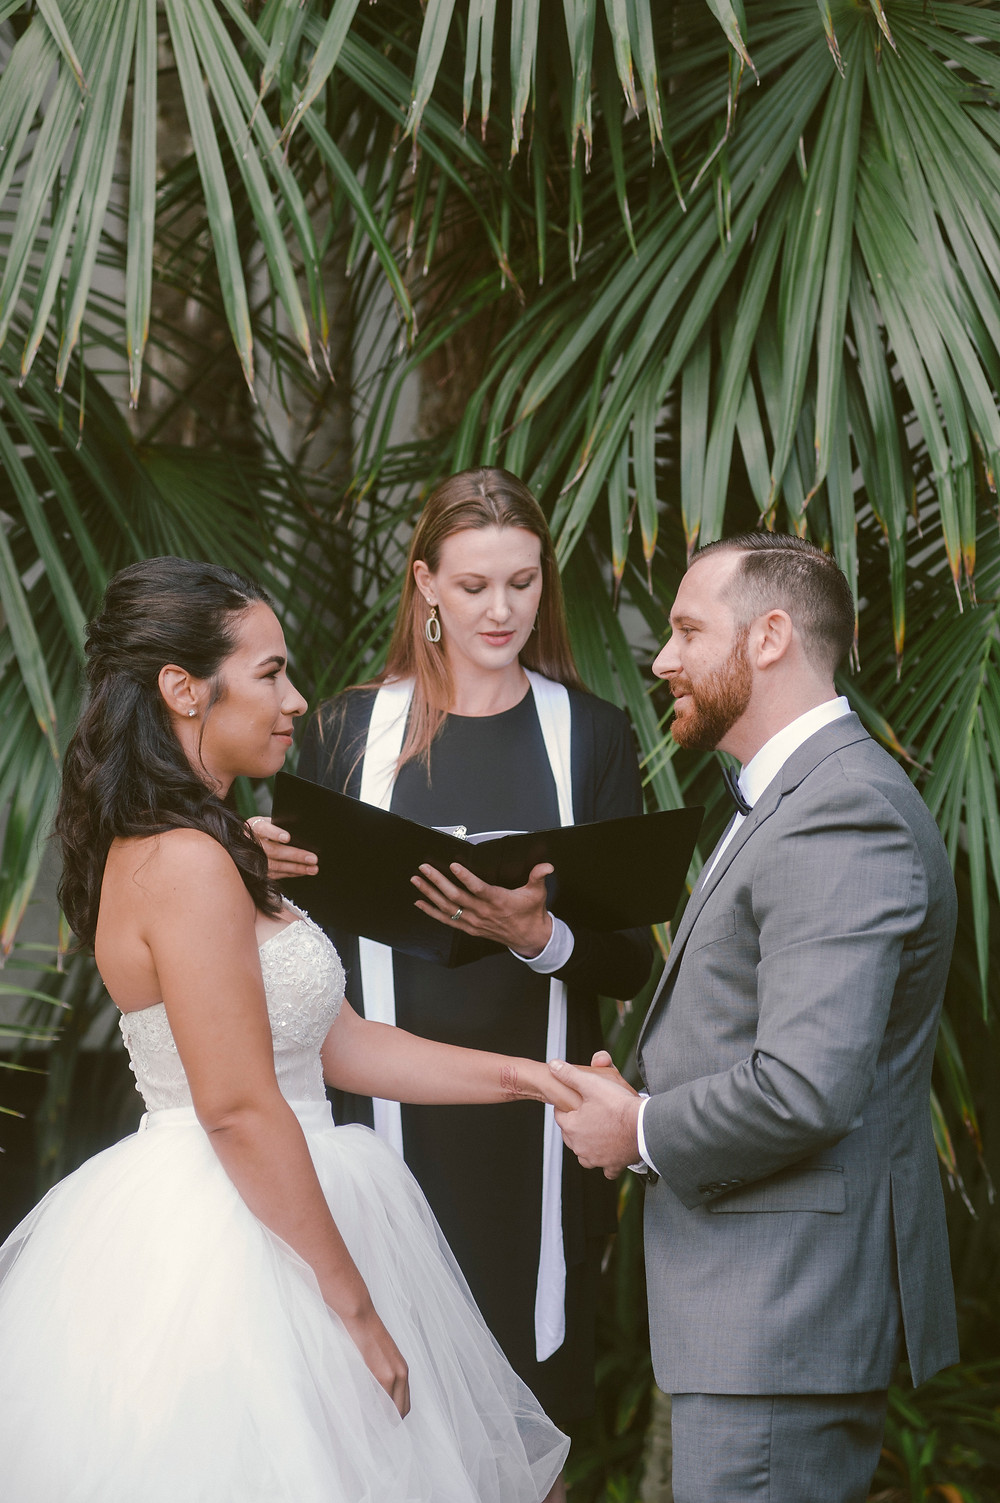 Seaside Ceremonies Photo By ByCherry Photography